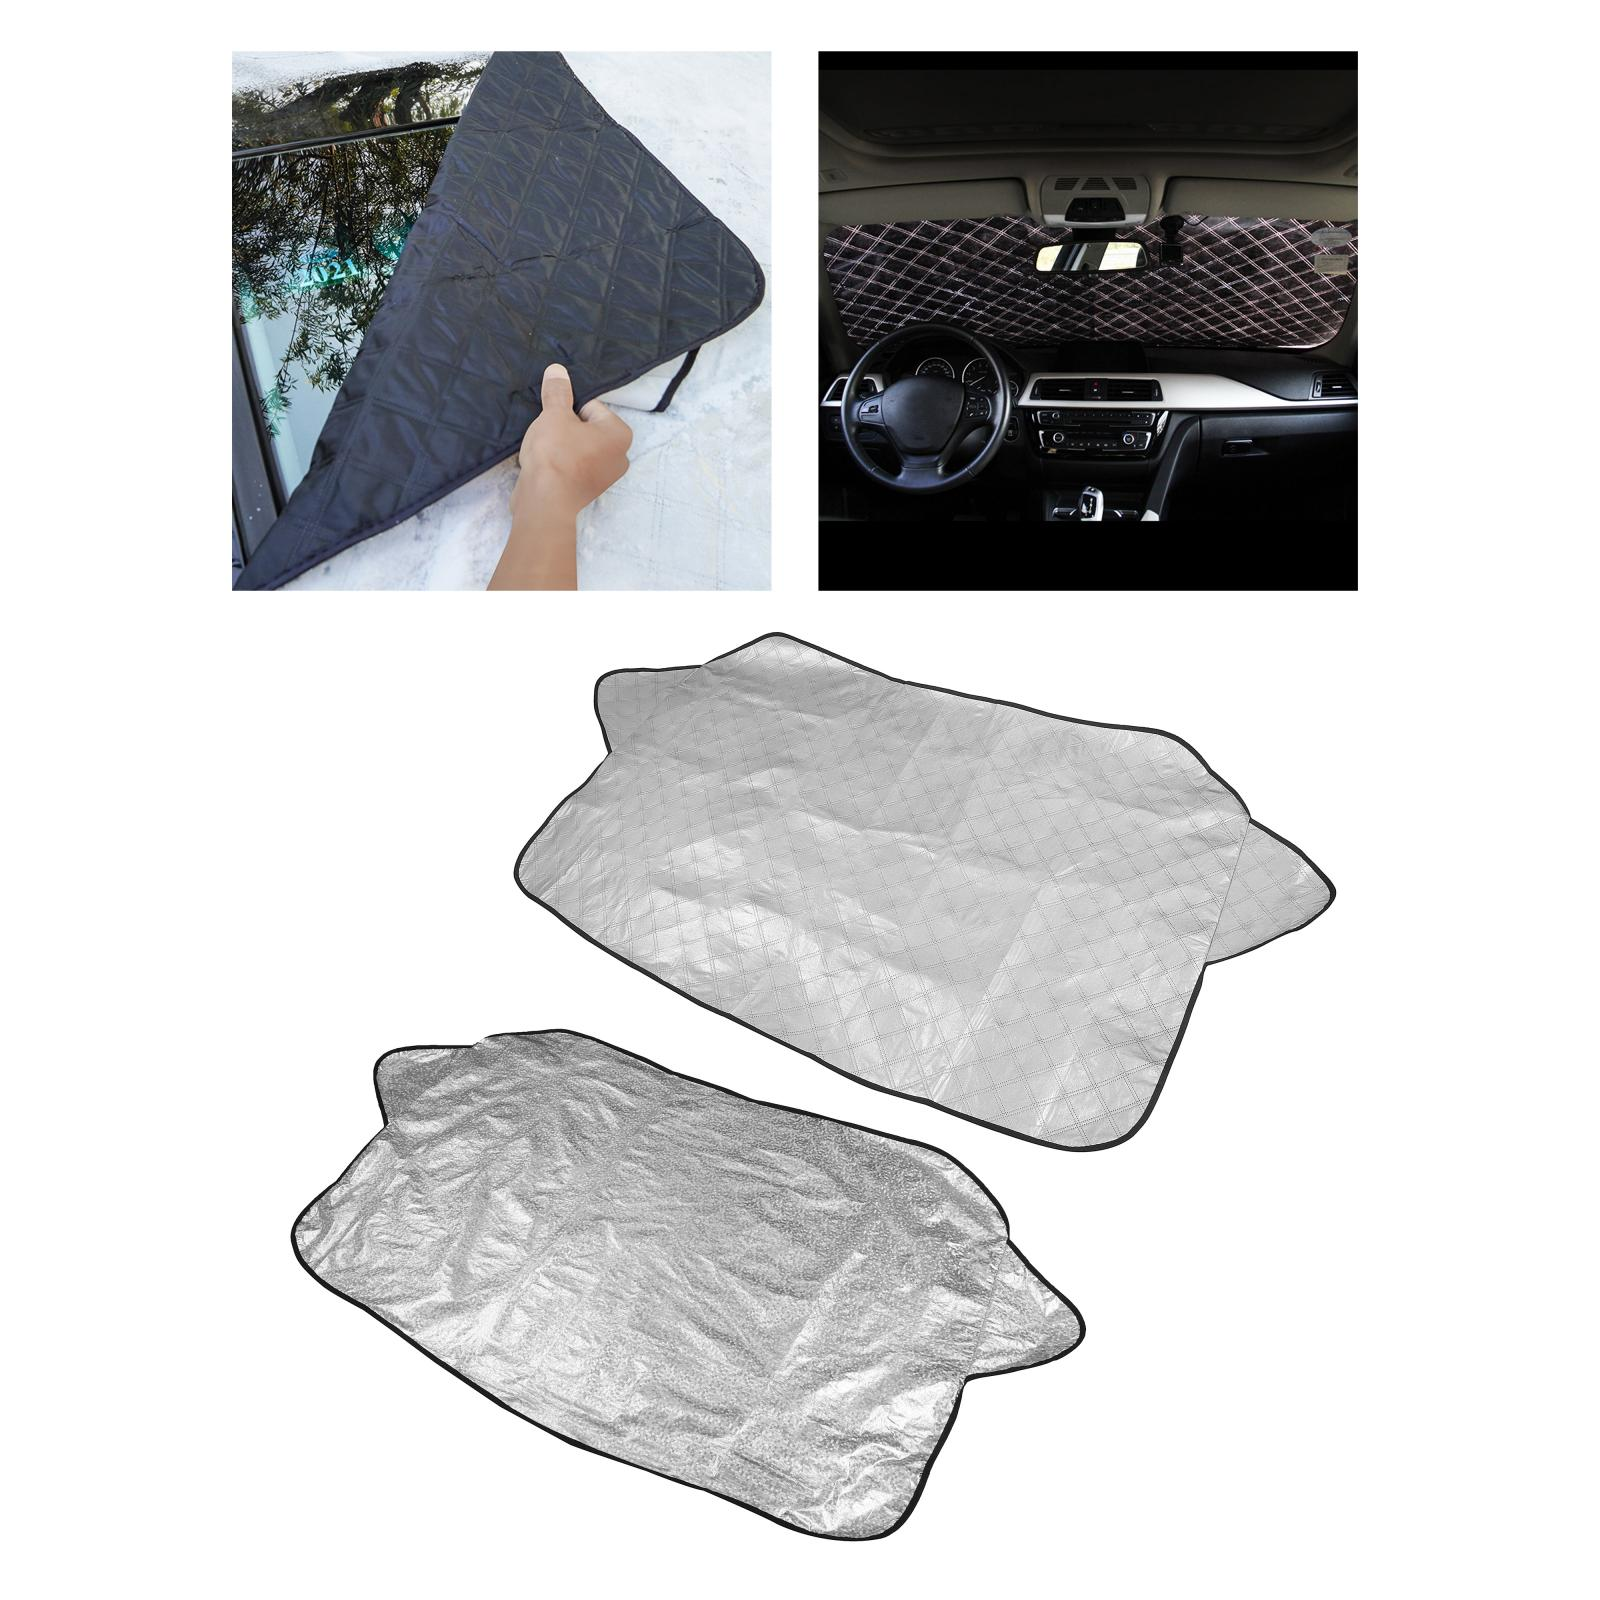 Winter Car Windshield Snow Cover Ice Dust Screen Protector Shield Guard